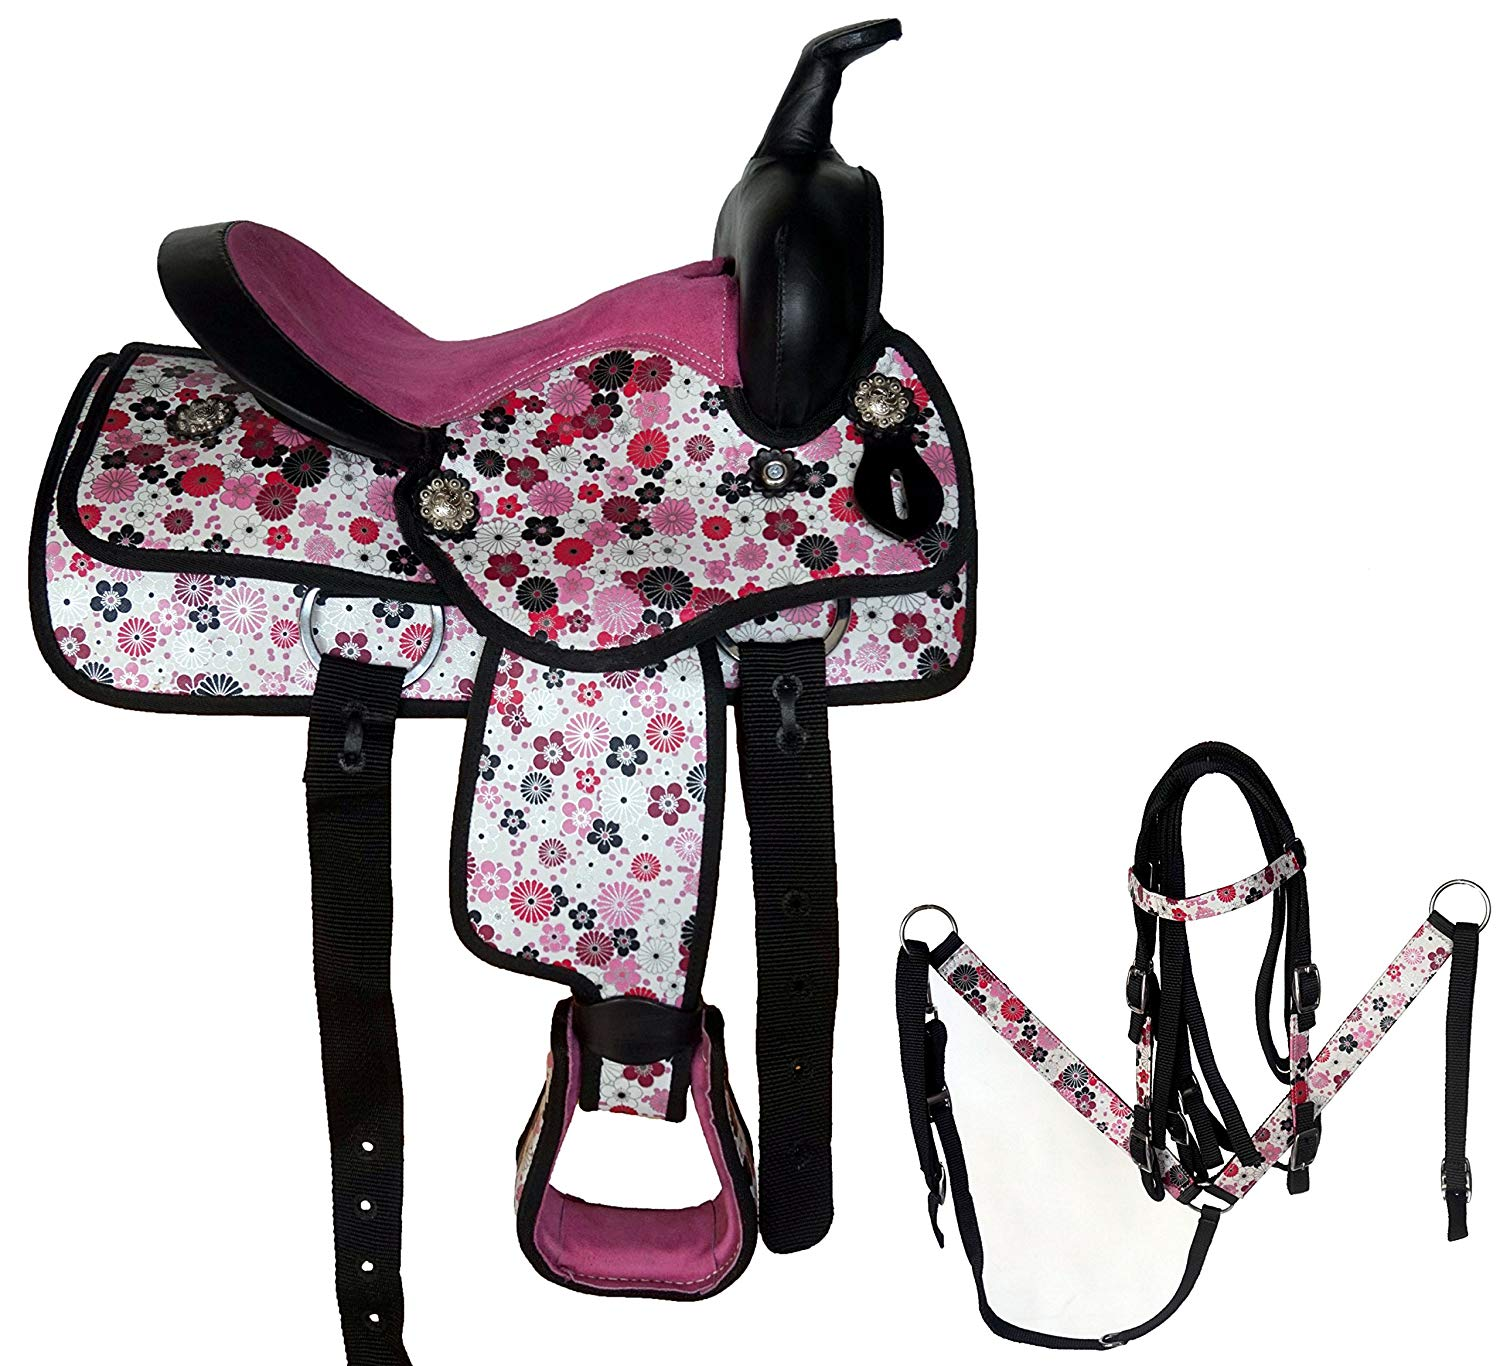 "Equitem 12"" Pink Floral Synthetic Western Saddle with Headstall & Breast Collar"